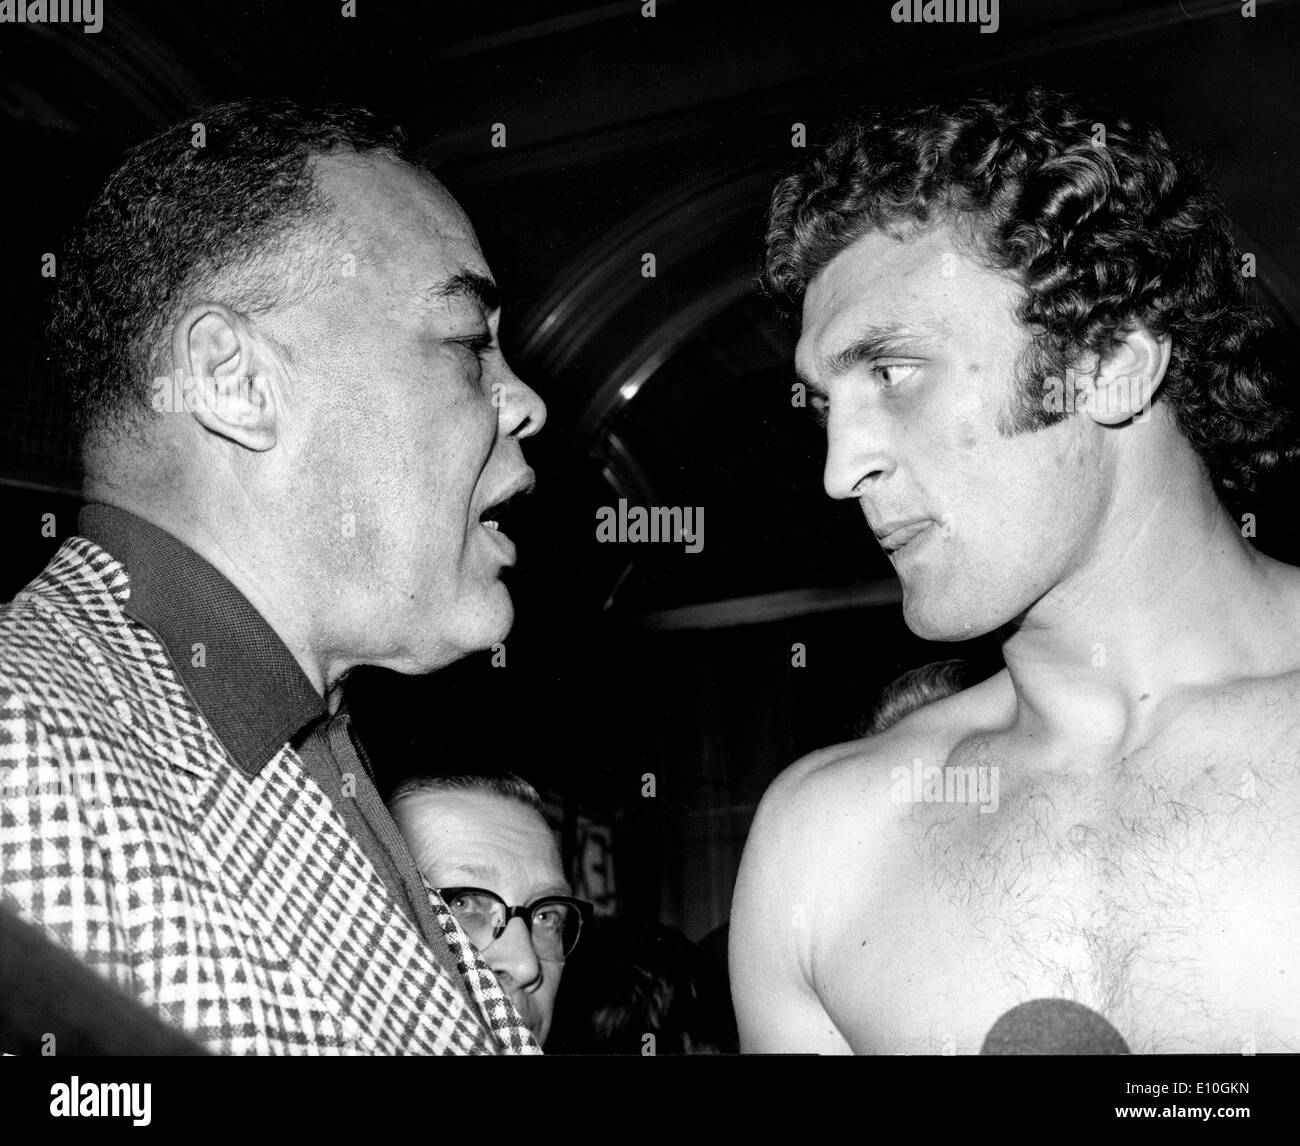 JOE LOUIS, the former world heavyweight champion, has a word with JOE BUGNER, European heavyweight champion - Stock Image